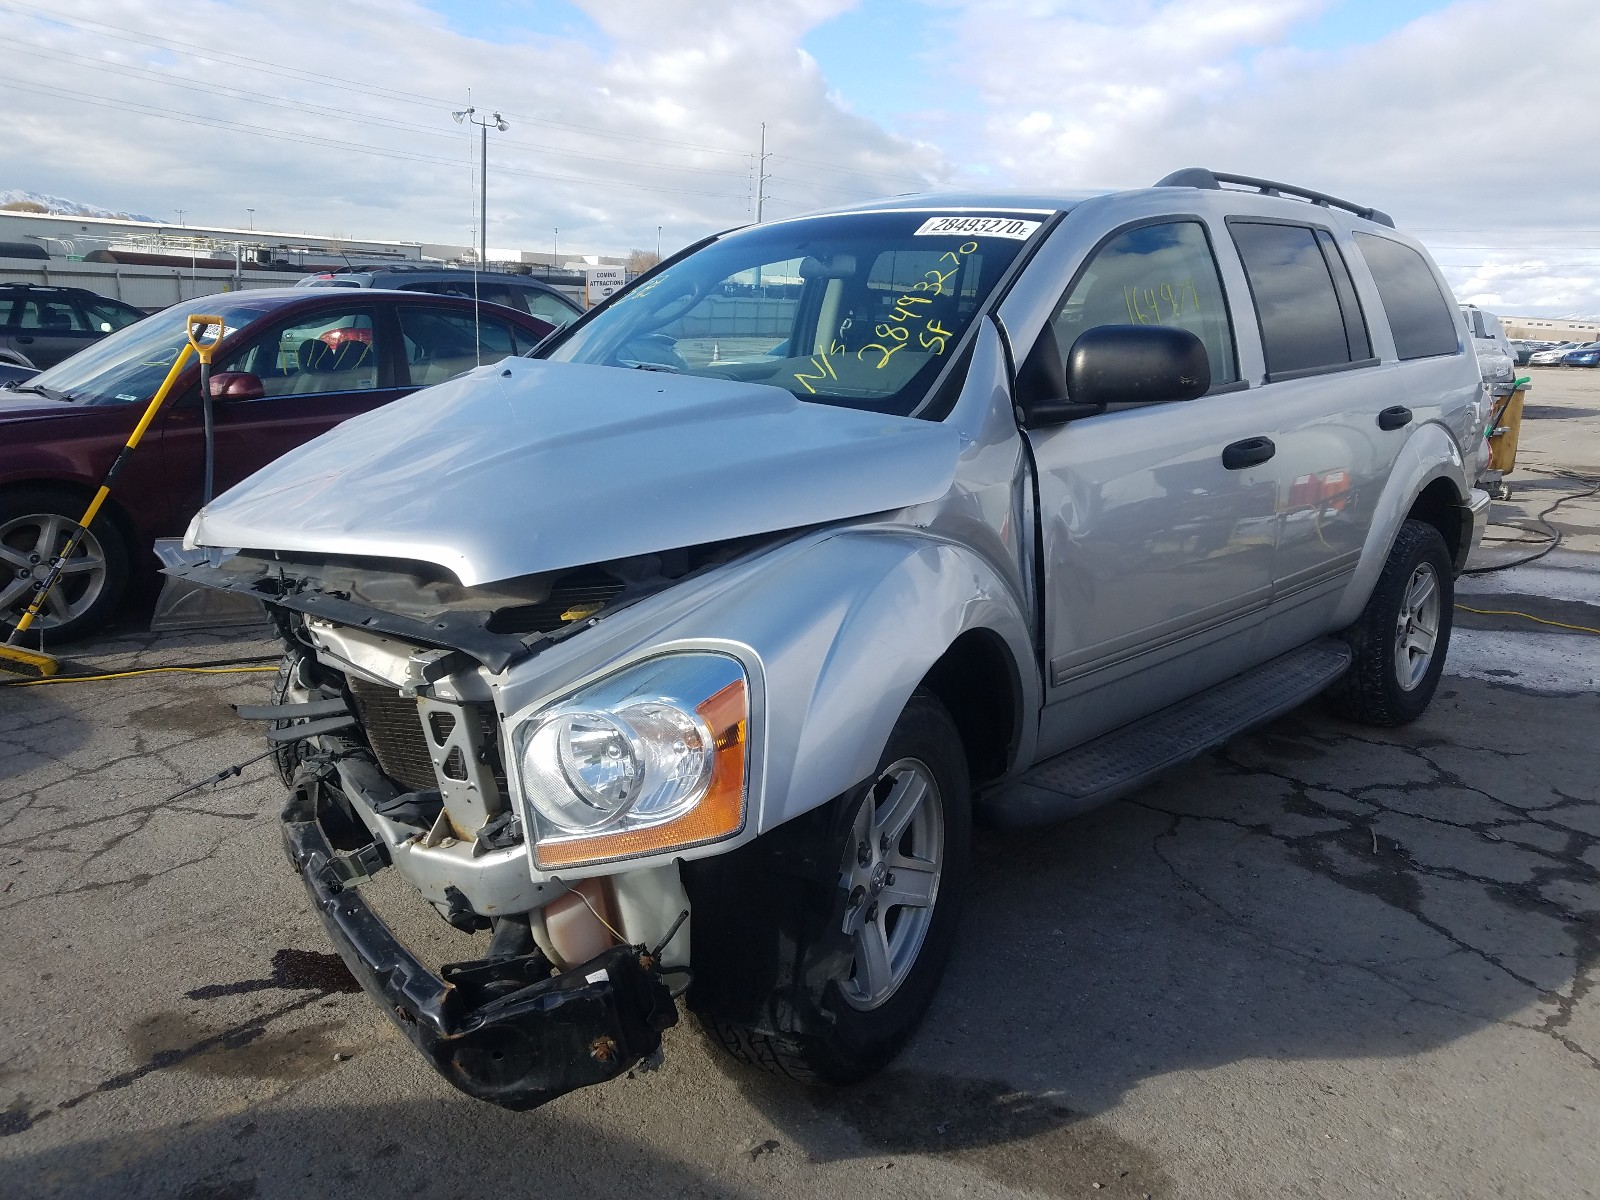 1D4HB48N44F165169 - 2004 Dodge Durango Sl 4.7L Right View